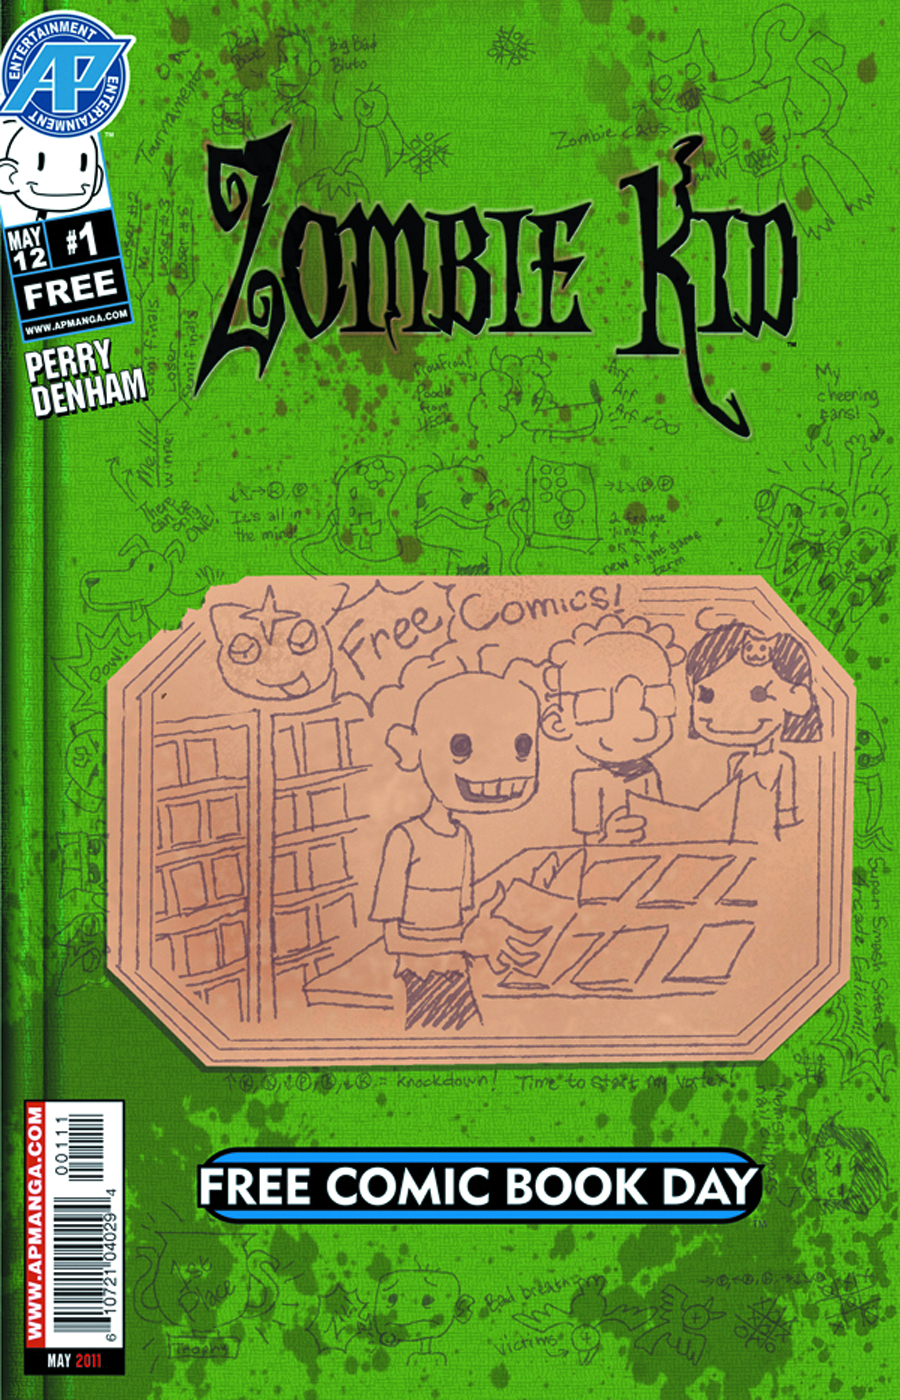 Diary of a Zombie Kid